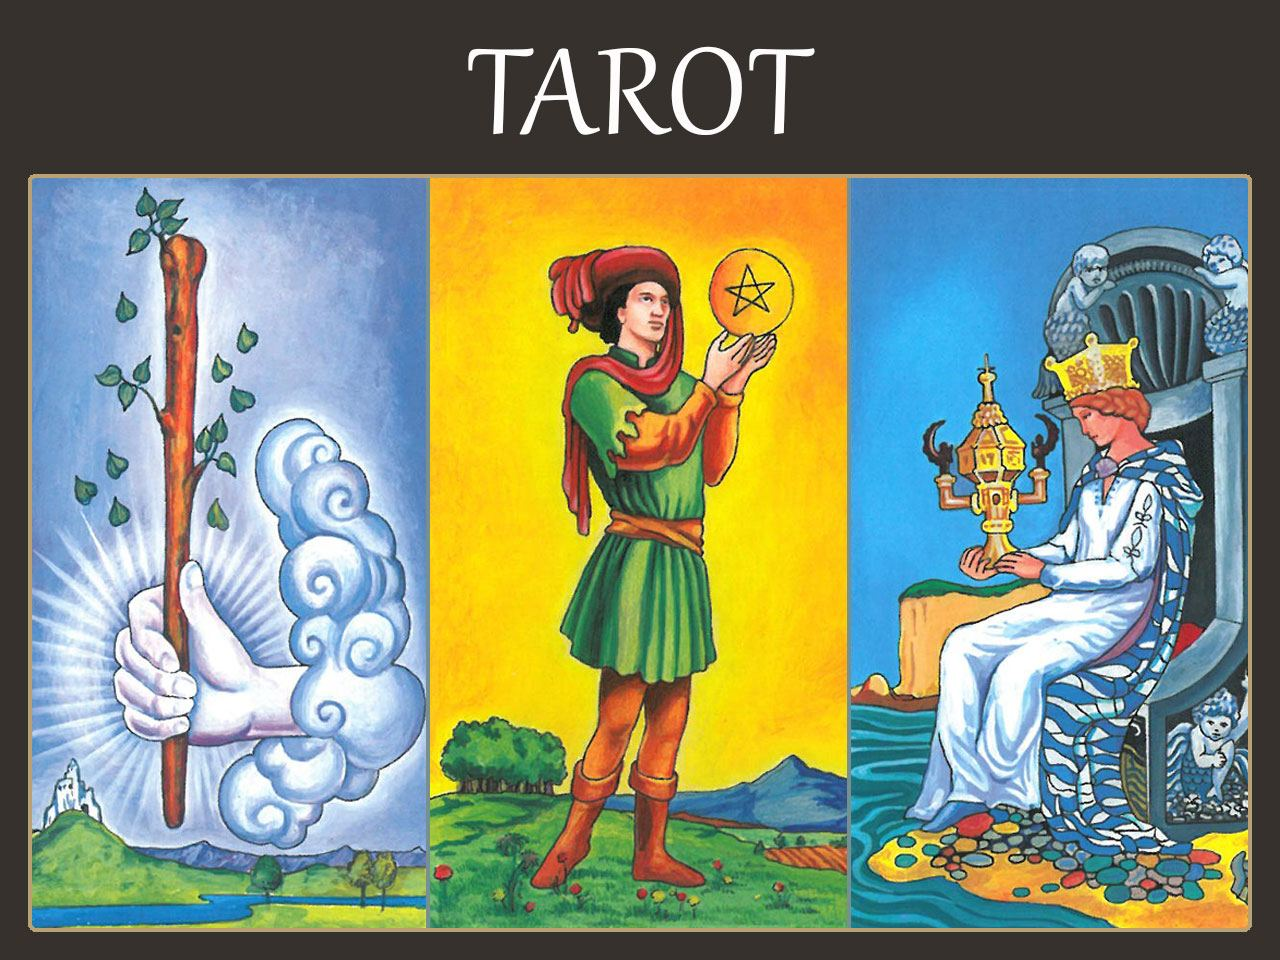 Symbols and meanings animals crystals dreams flowers native tarot card meanings tarot reading 1280x960 biocorpaavc Gallery